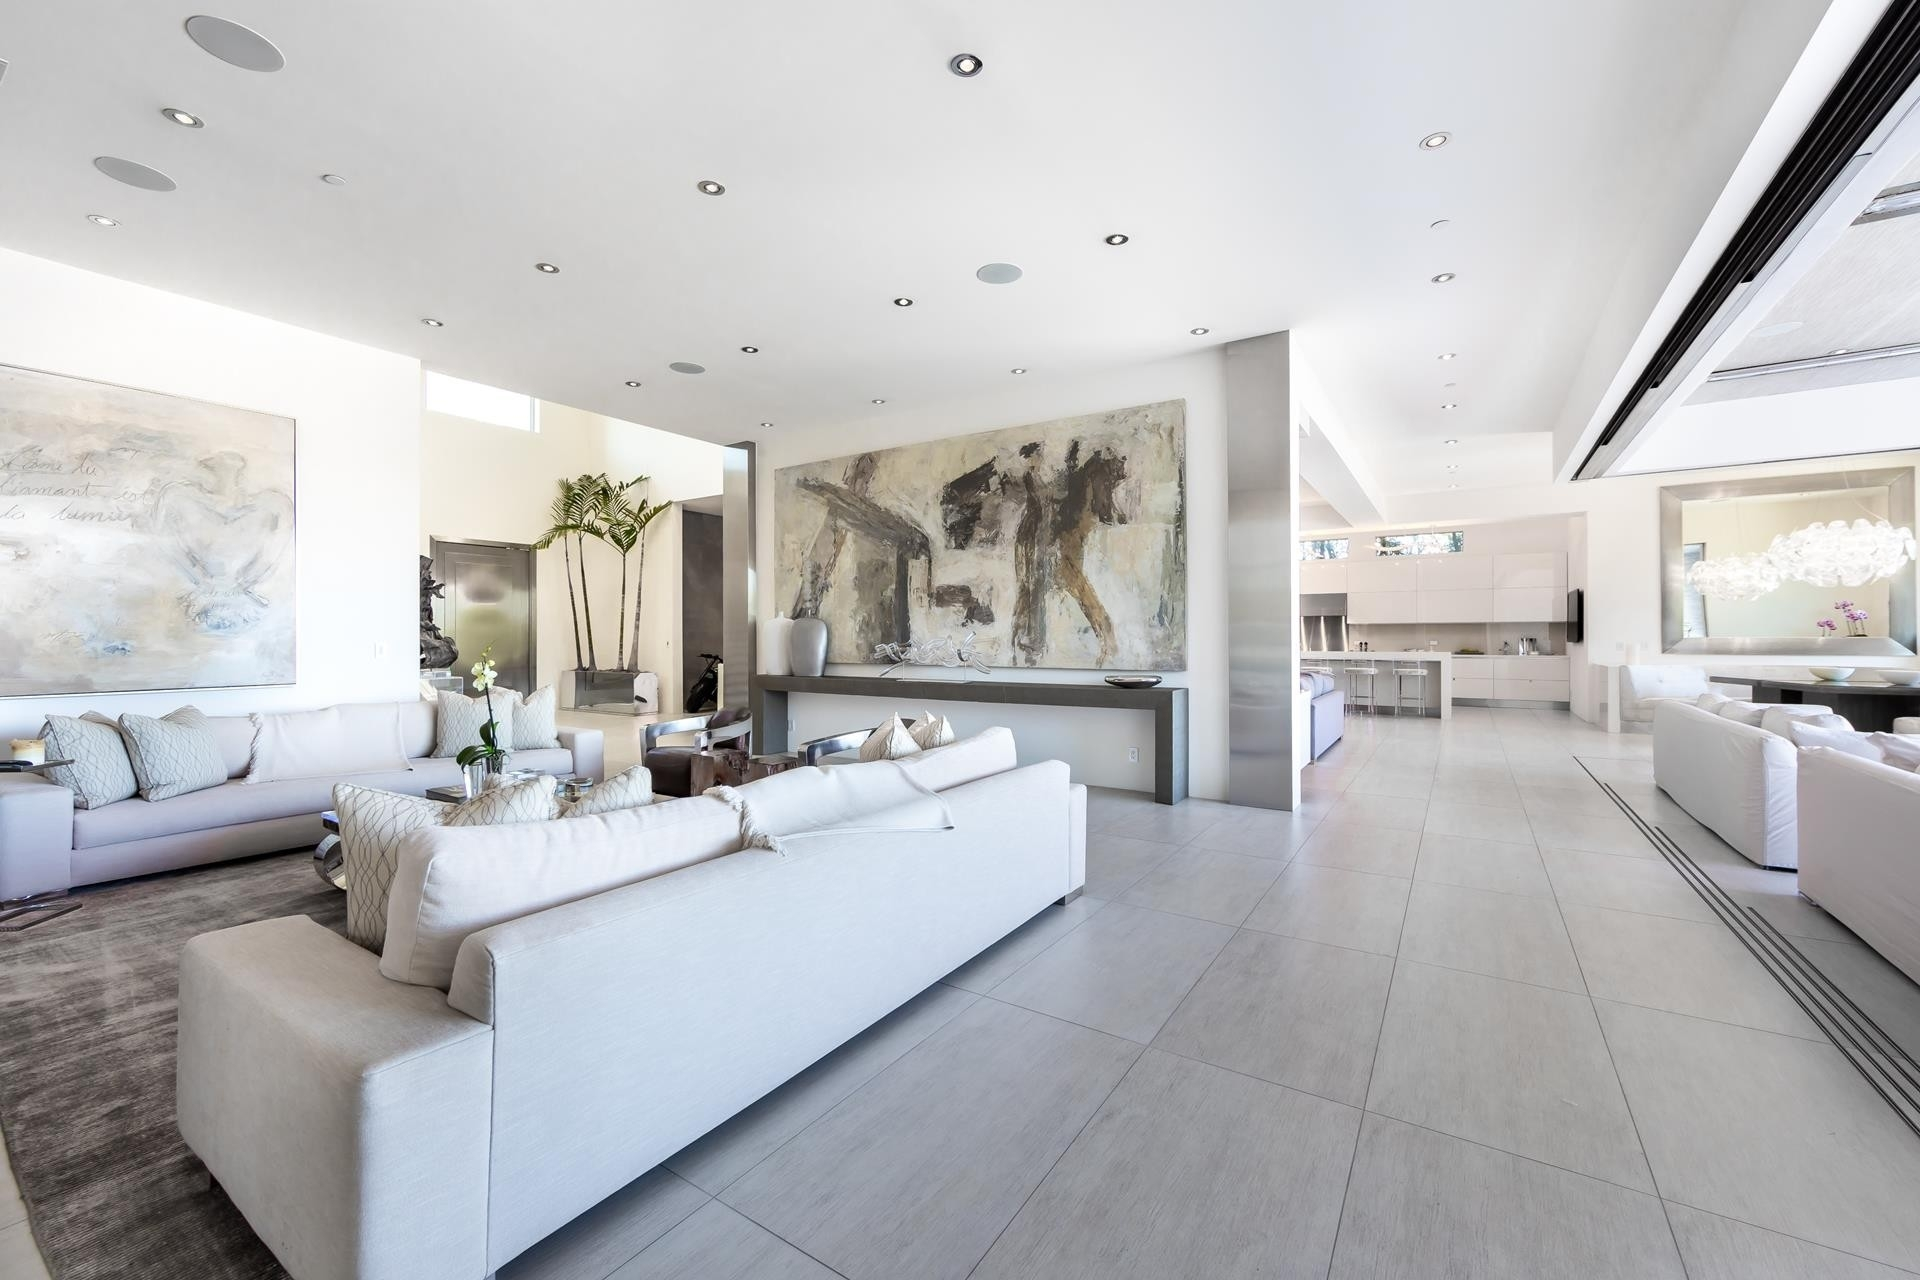 9. Single Family Homes for Sale at Bel Air, Los Angeles, CA 90077